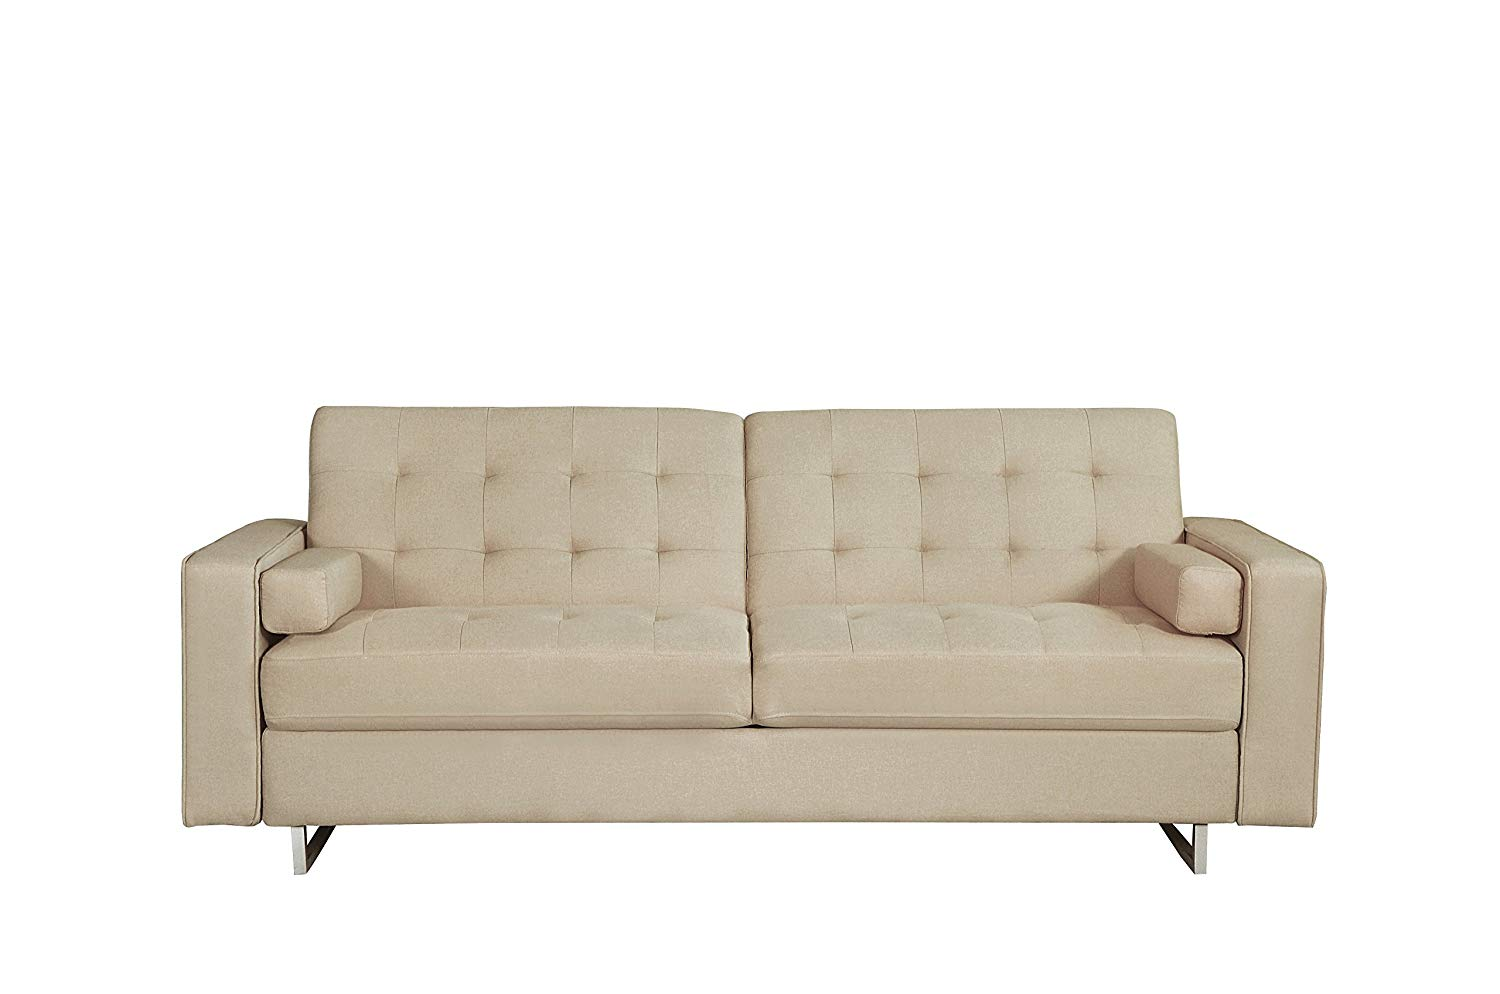 Container Furniture Direct Erickson Collection Modern Reversible Fabric Living Room Sofa/Sofa Bed, Beige